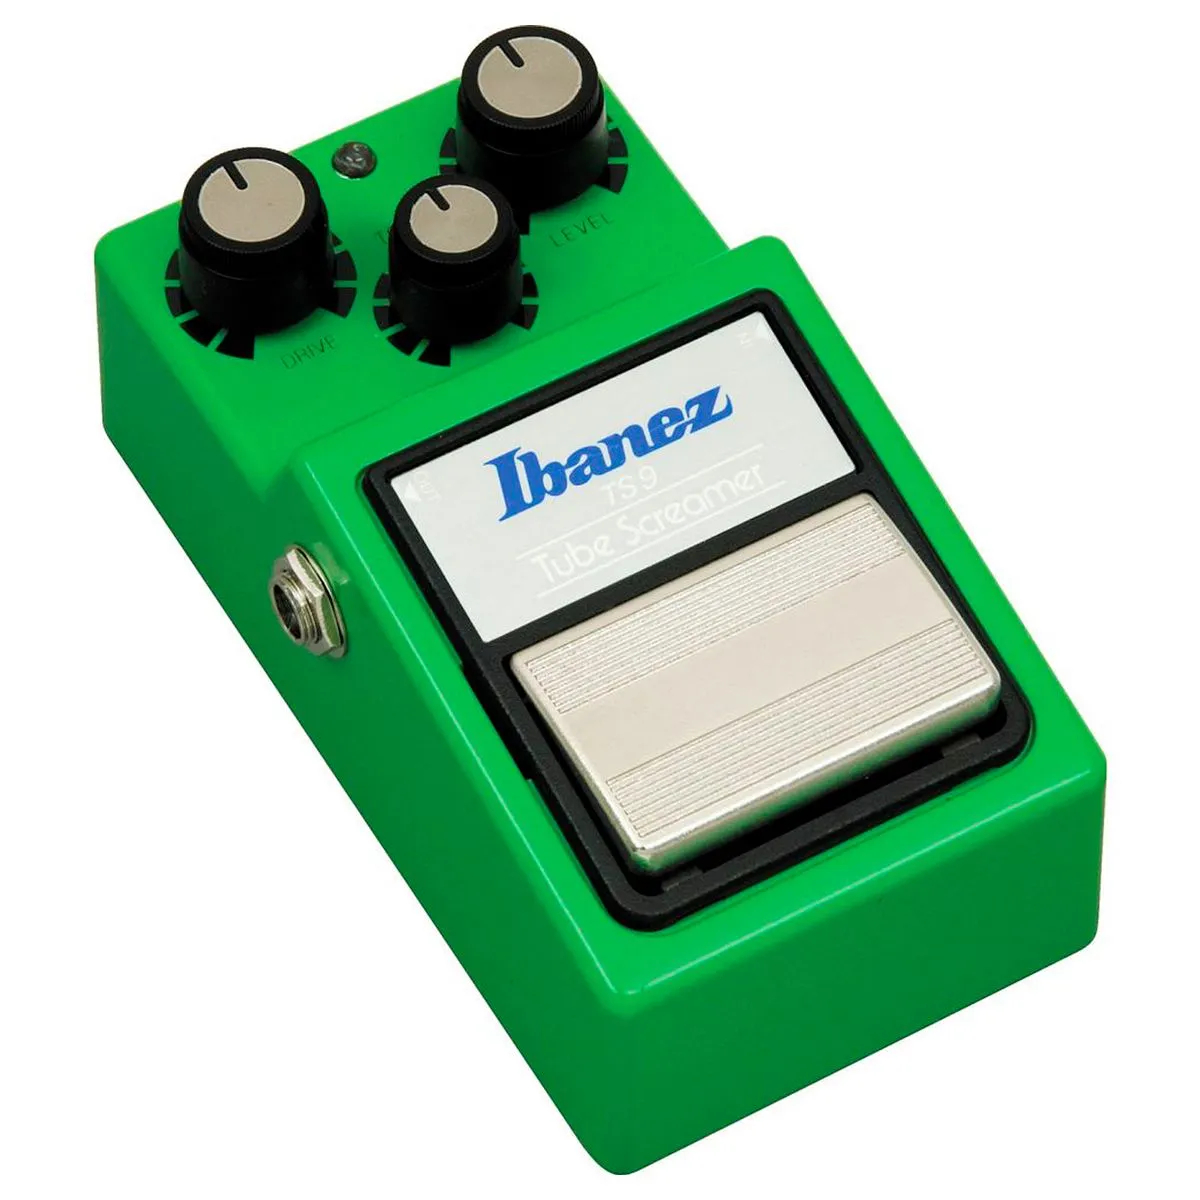 Pedal de Efeito Ibanez Tube Screamer TS9 Overdrive